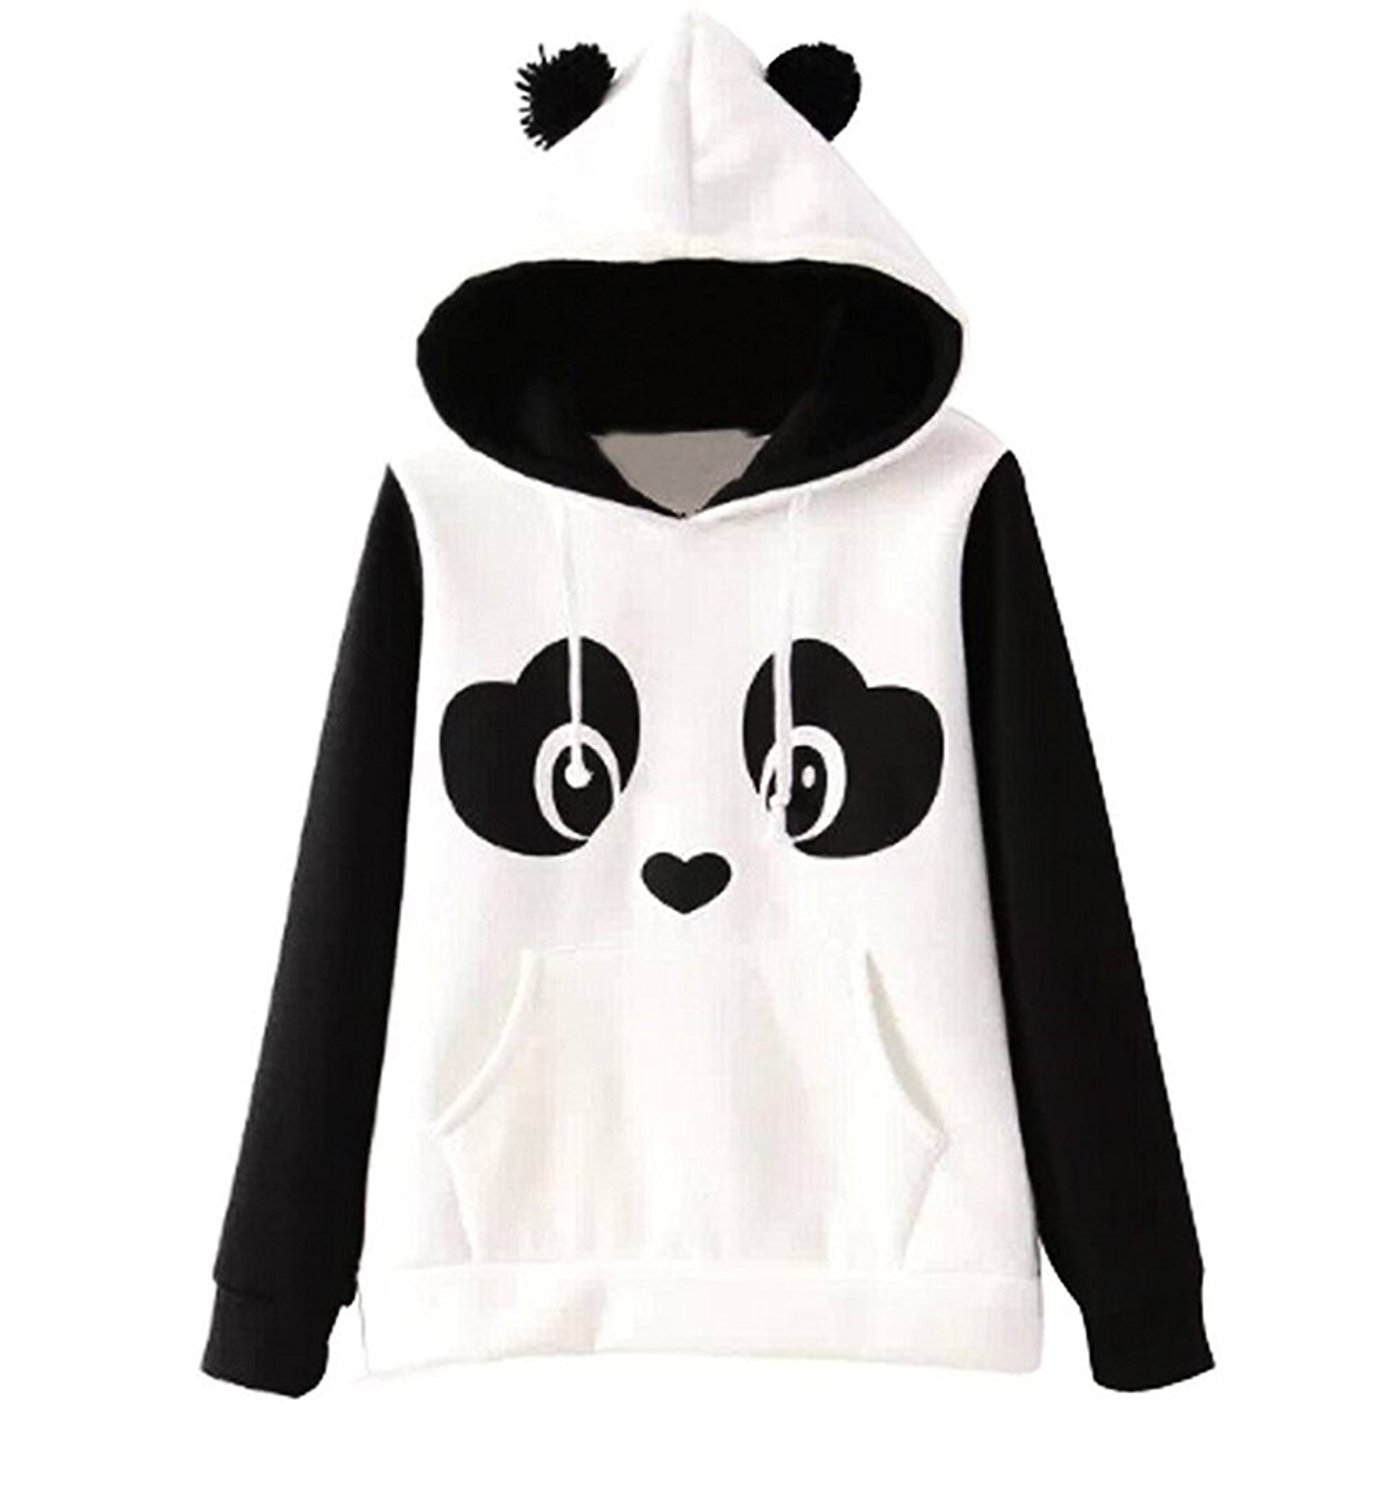 Jubileens Women's Cute Panda Print Fleece Hoodie White and Black Tops Pullover at Amazon Women's Clothing store